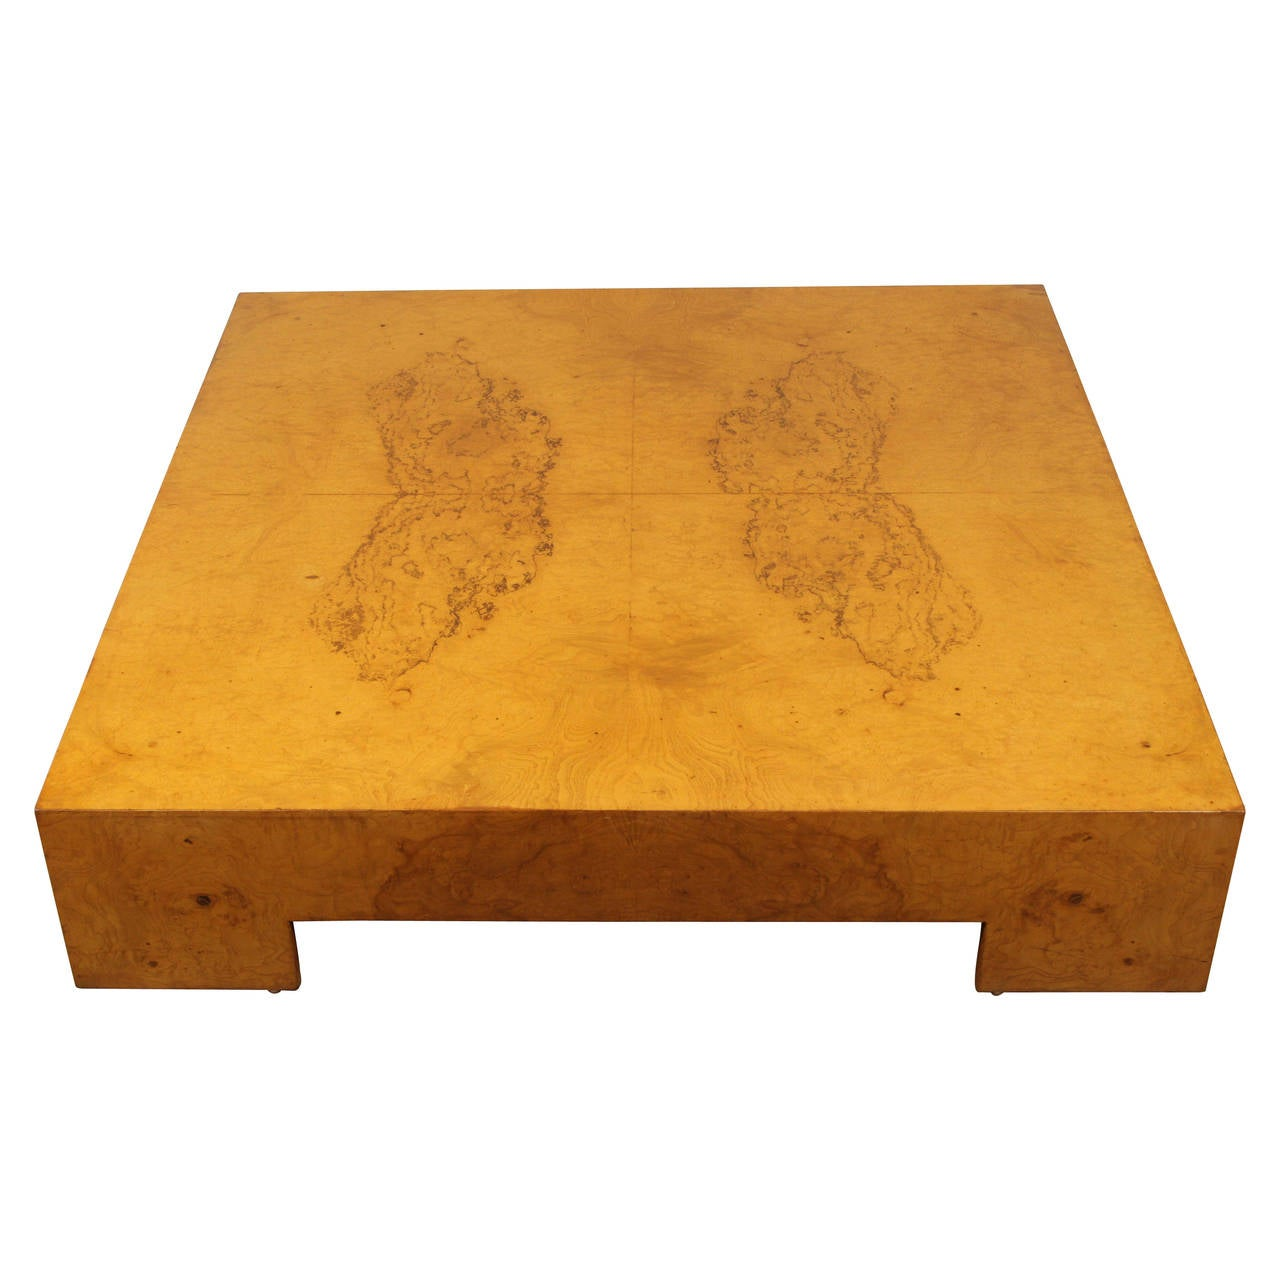 Low square burl wood coffee table by milo baughman at 1stdibs for Low coffee table wood